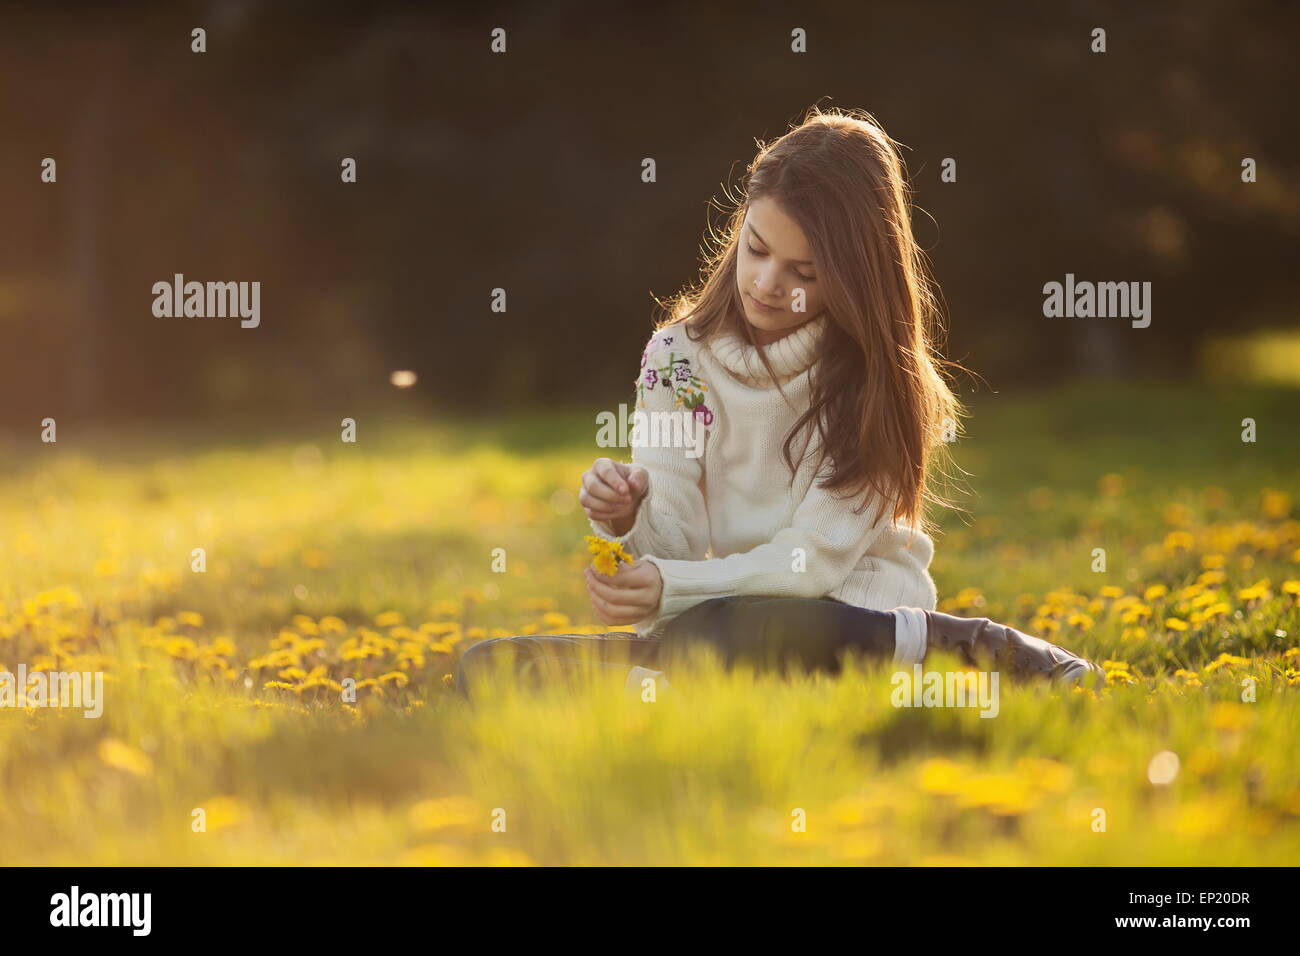 Girl sitting in a field of dandelions picking flowers - Stock Image